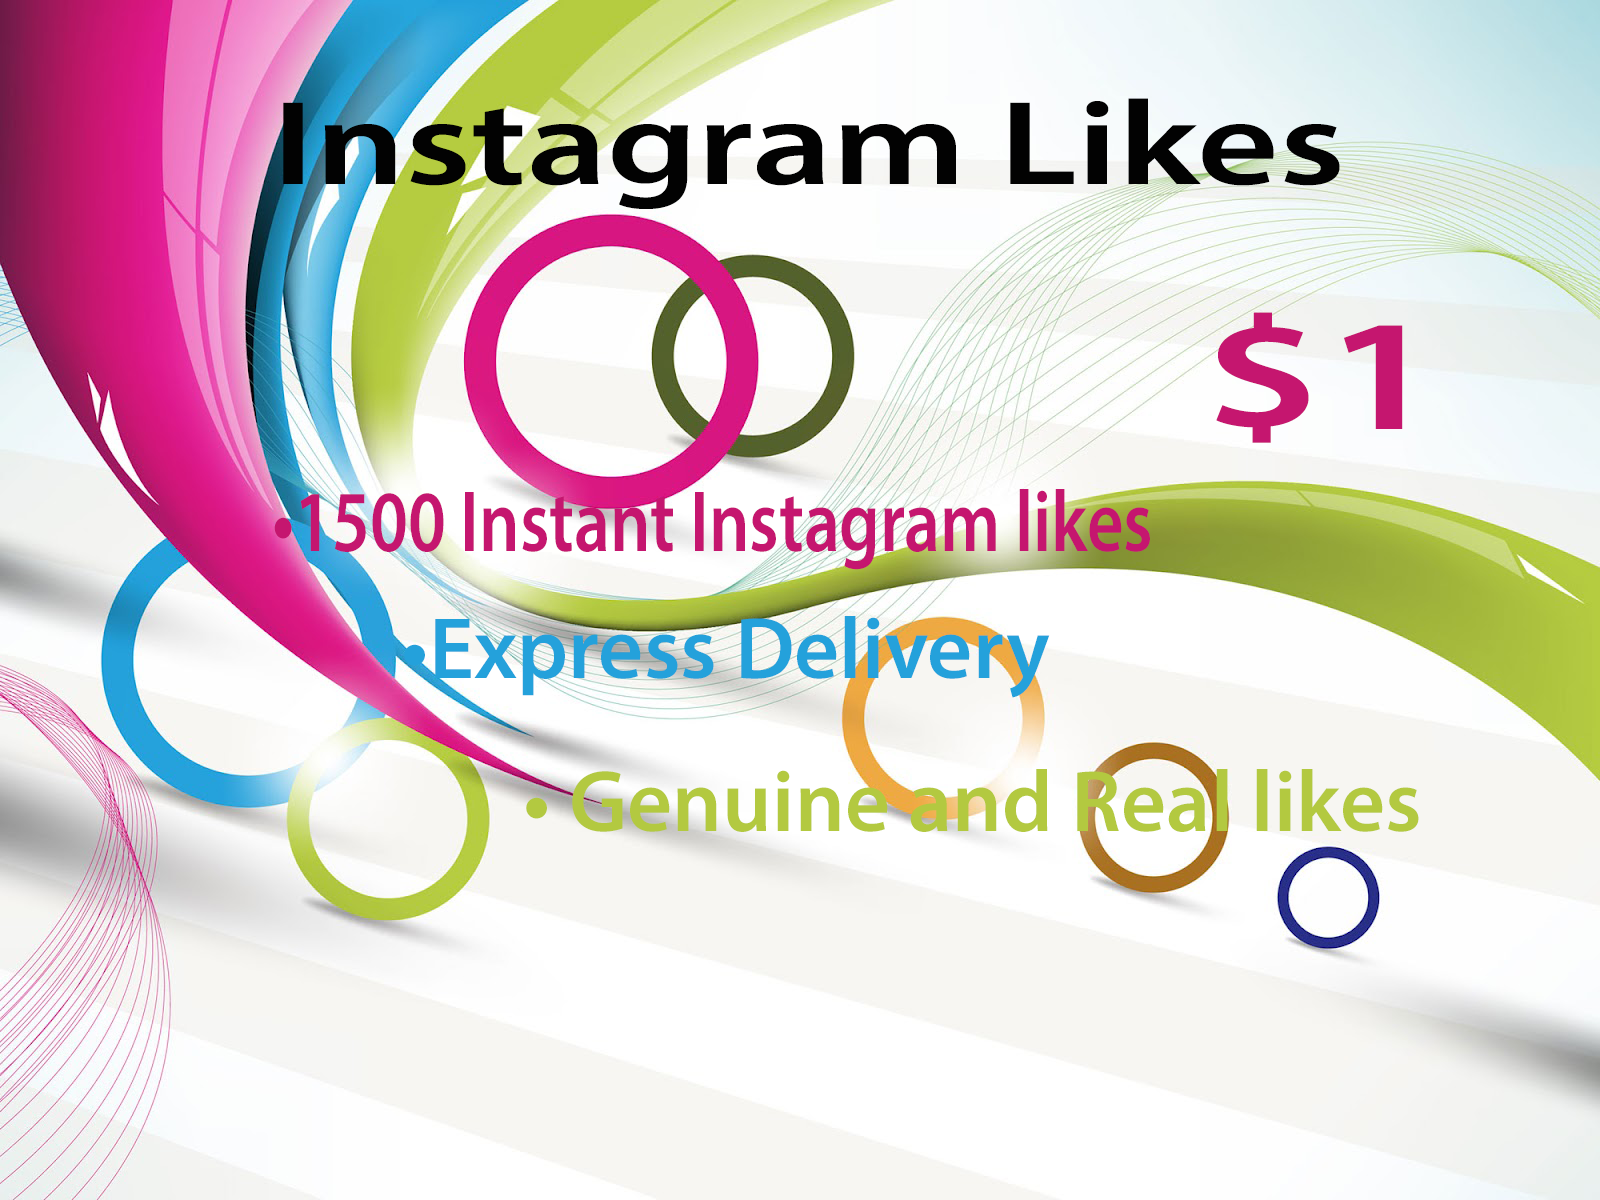 1500 Instant Instagram likes to your Photo or Video for $1